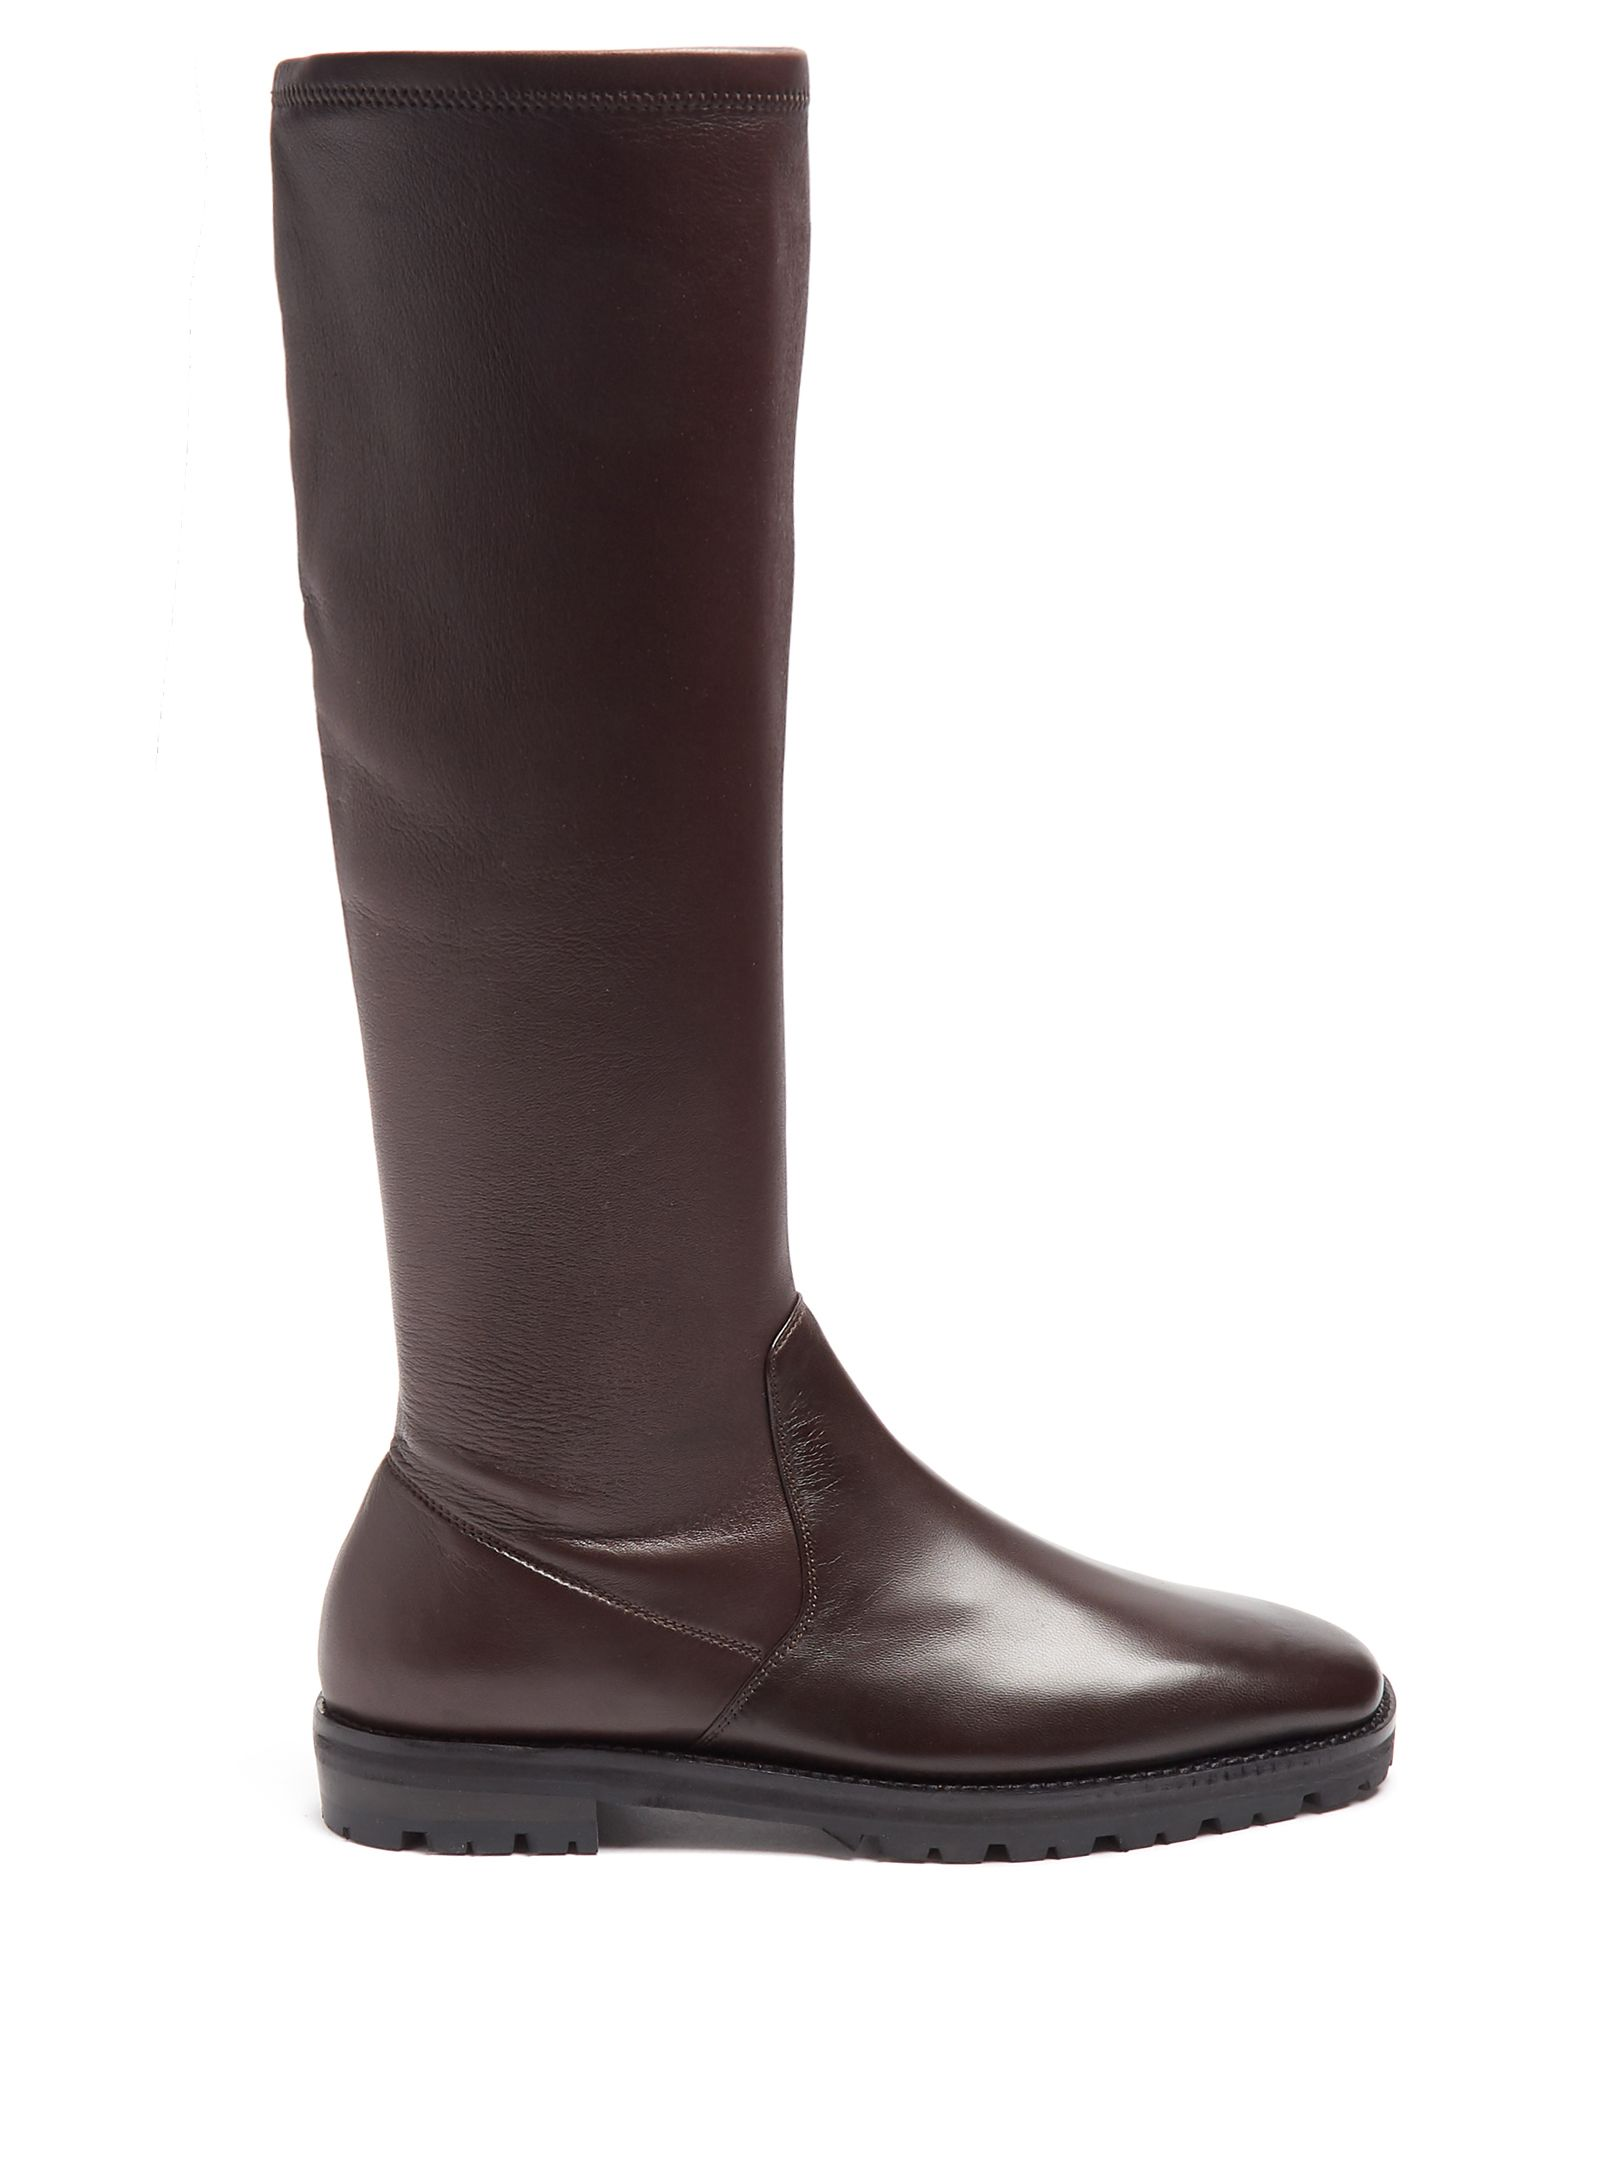 New Sale Online Outlet For Sale Fiona leather boots The Row Wholesale Outlet Shop Offer Sale Great Deals REHLj